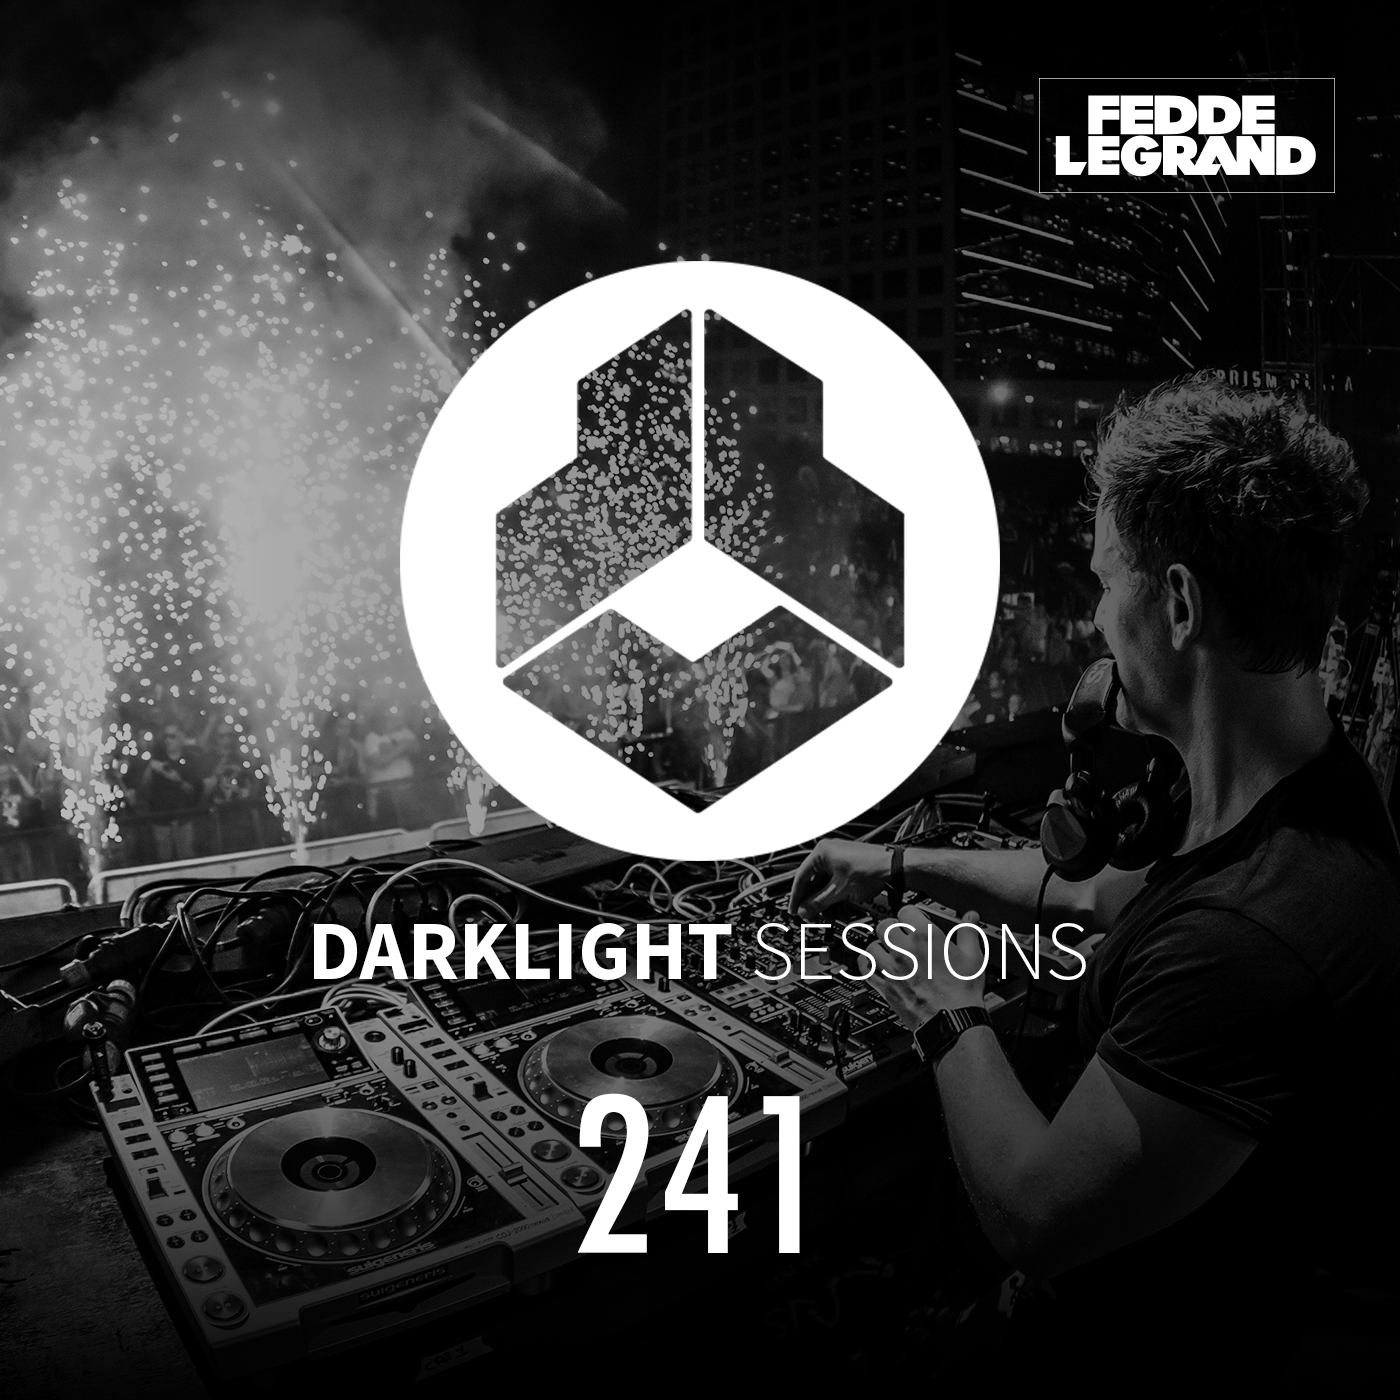 Darklight Sessions 241